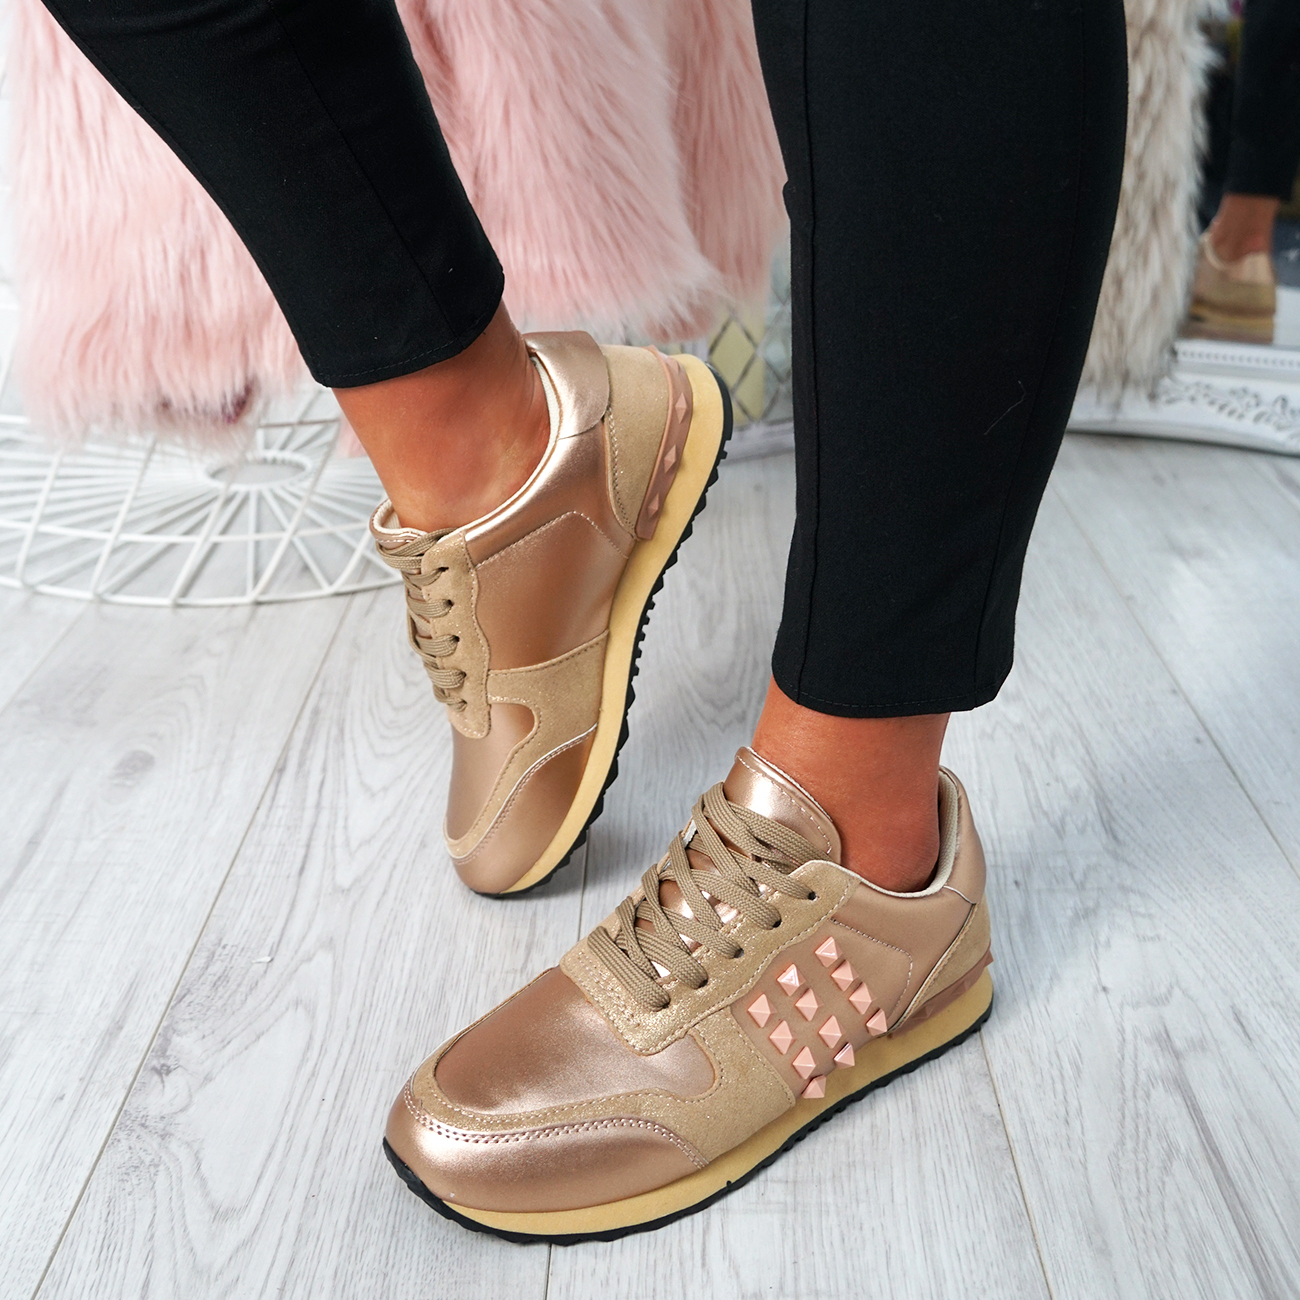 Femmes noires à lacets Sparkle Clous Baskets Tennis Comfy Fashion Escarpins